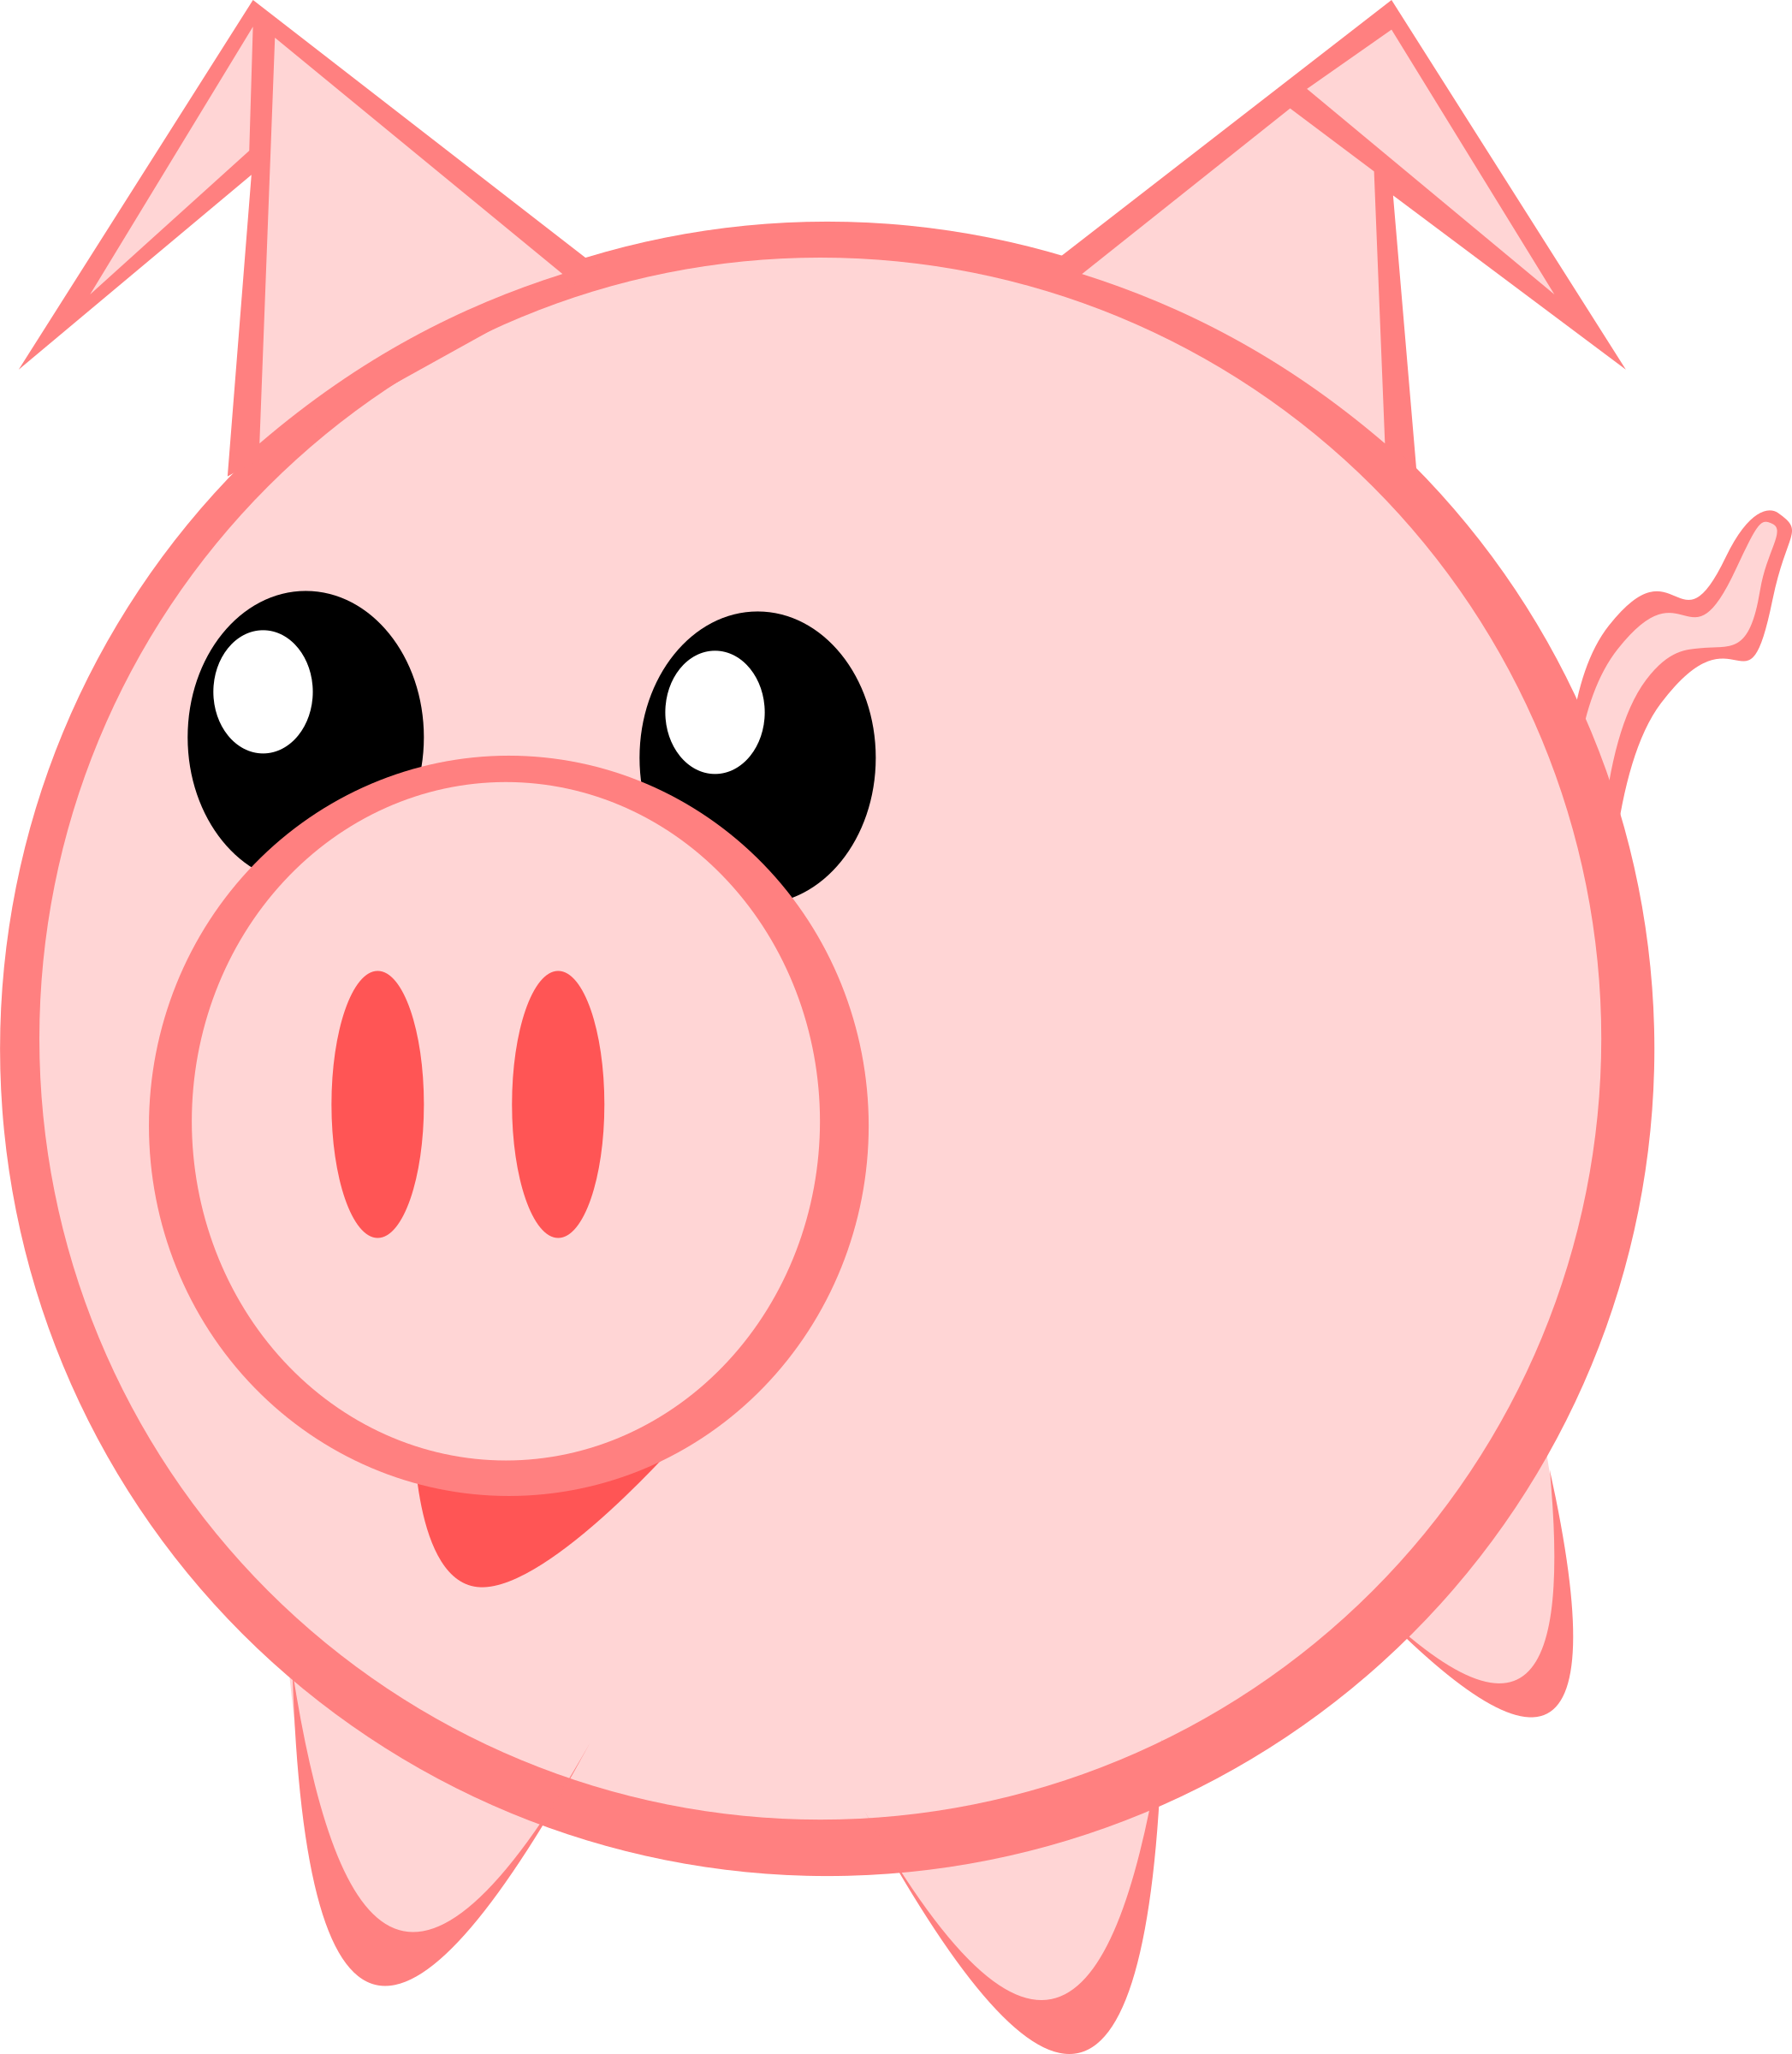 Cerdito | Little Pig by Maw